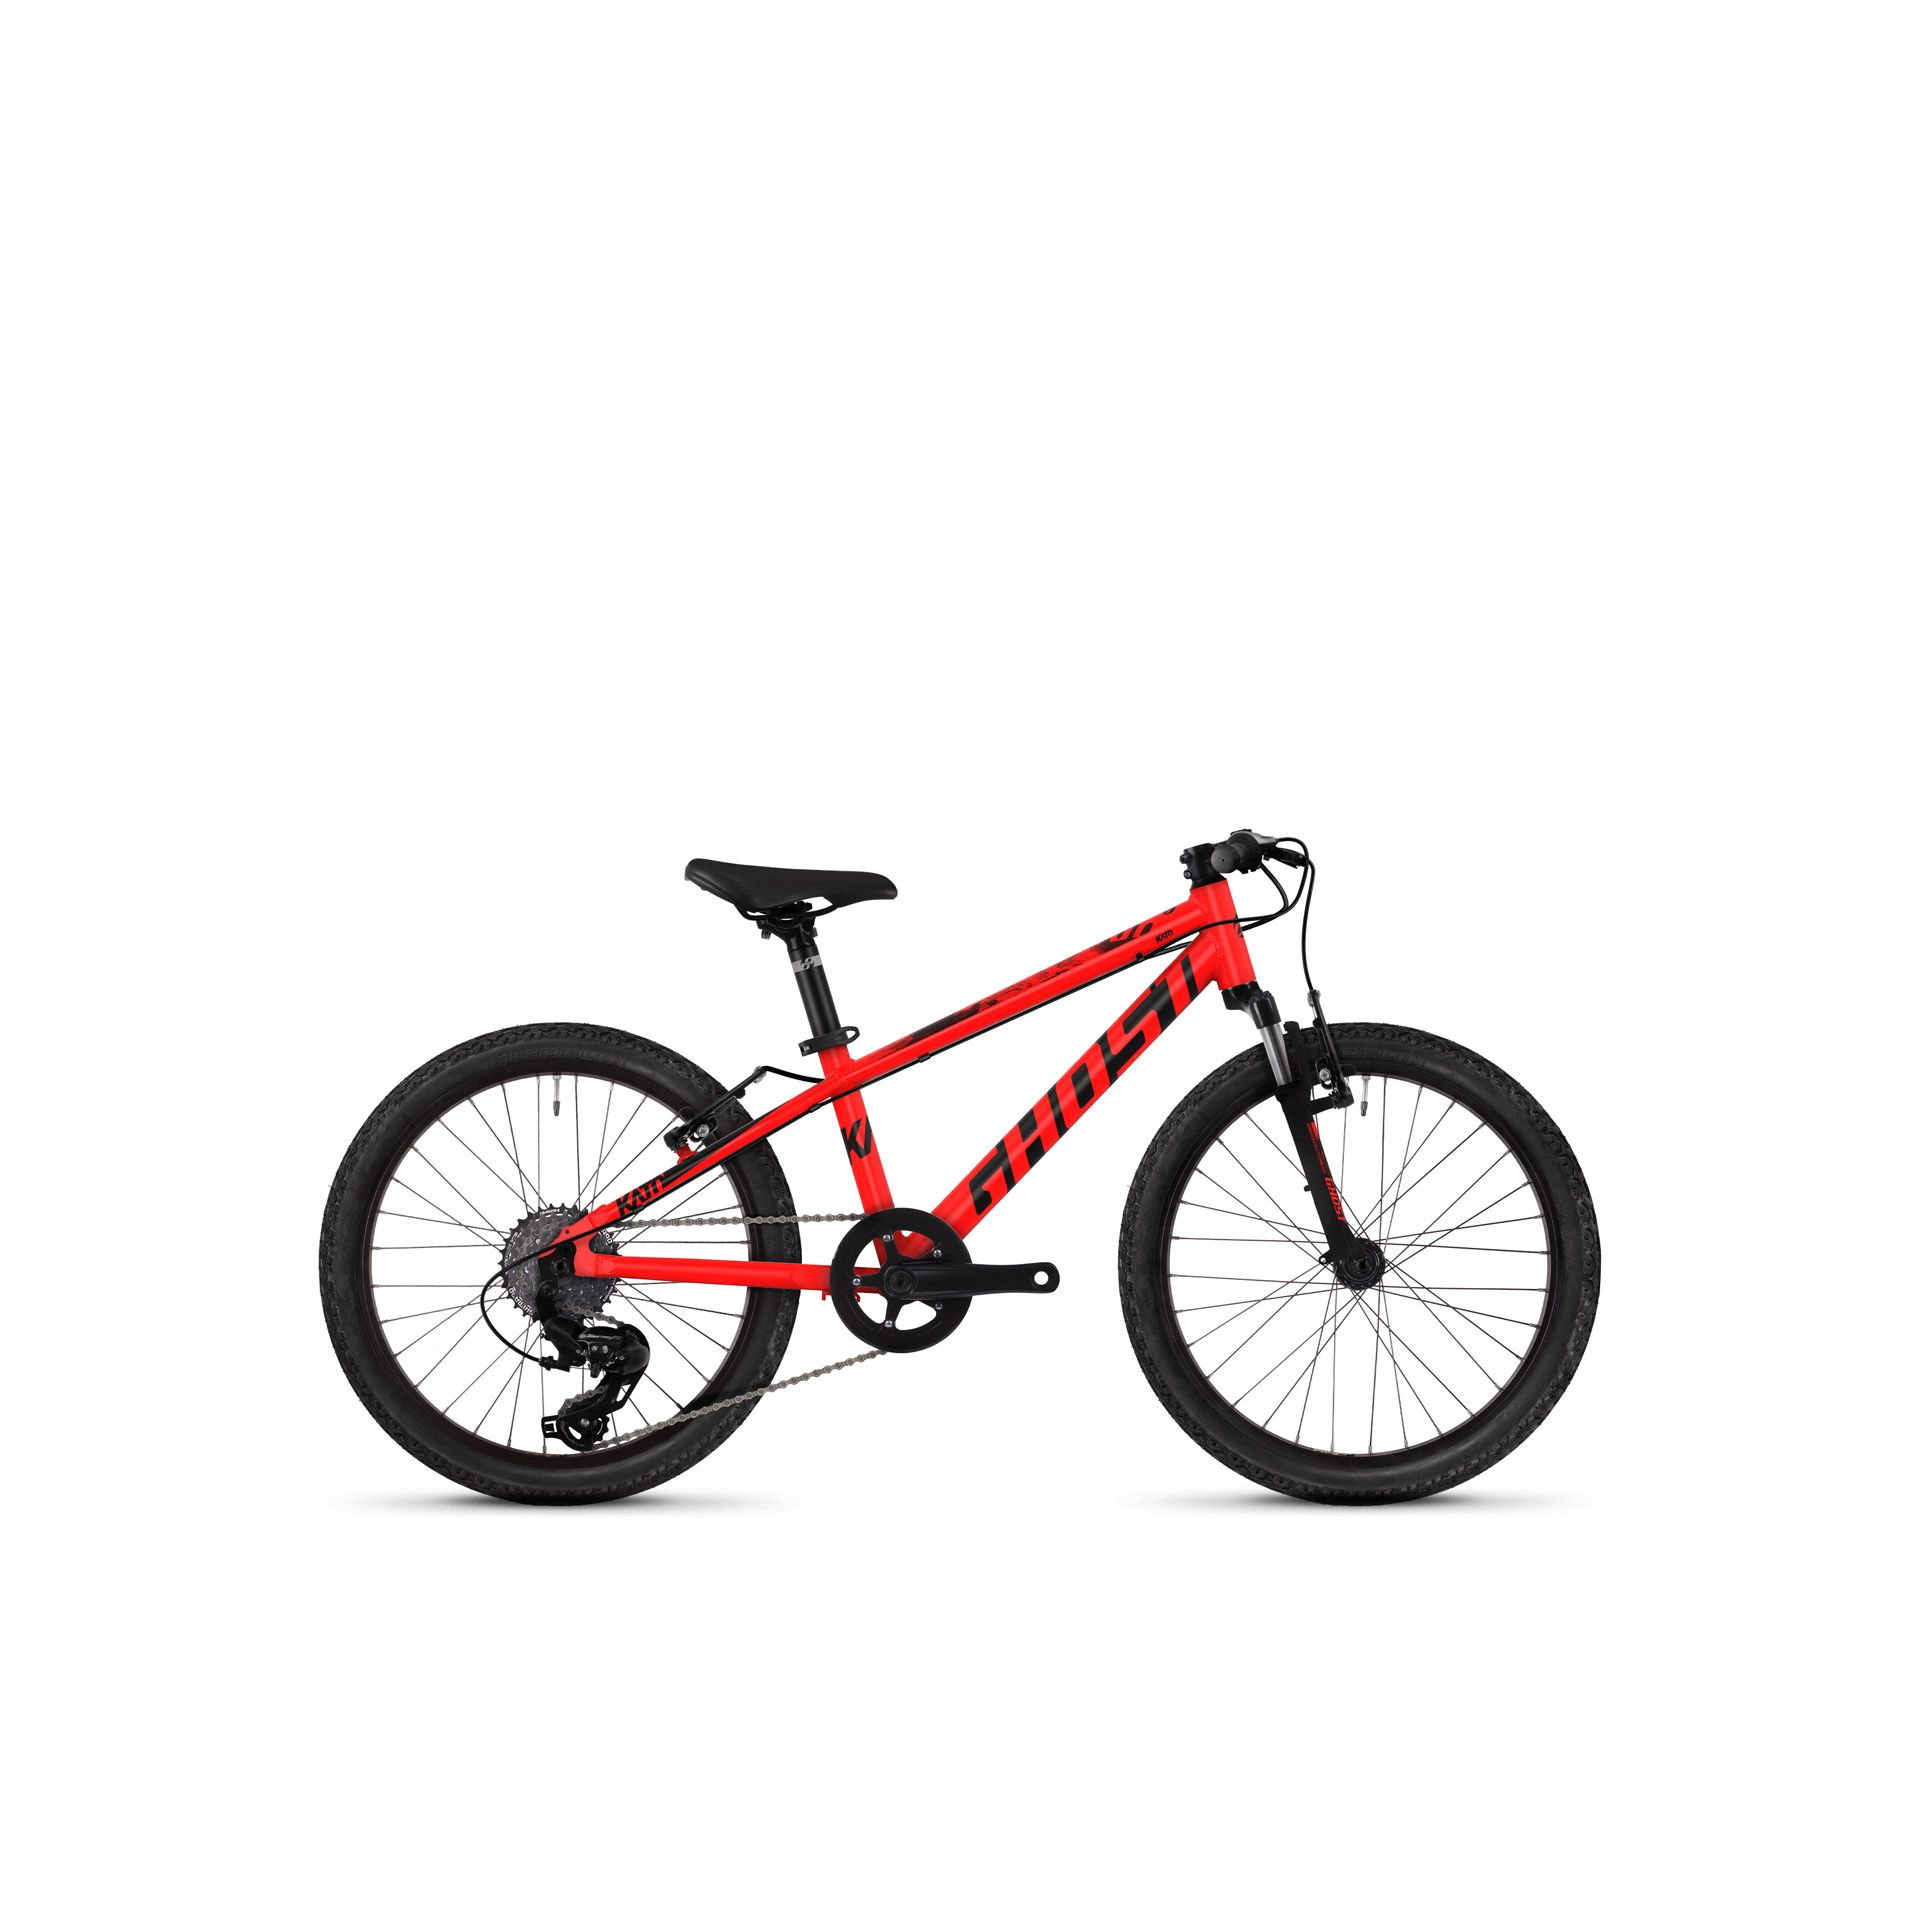 VTT semi-rigide Ghost Kato Kid 2 20 Rouge